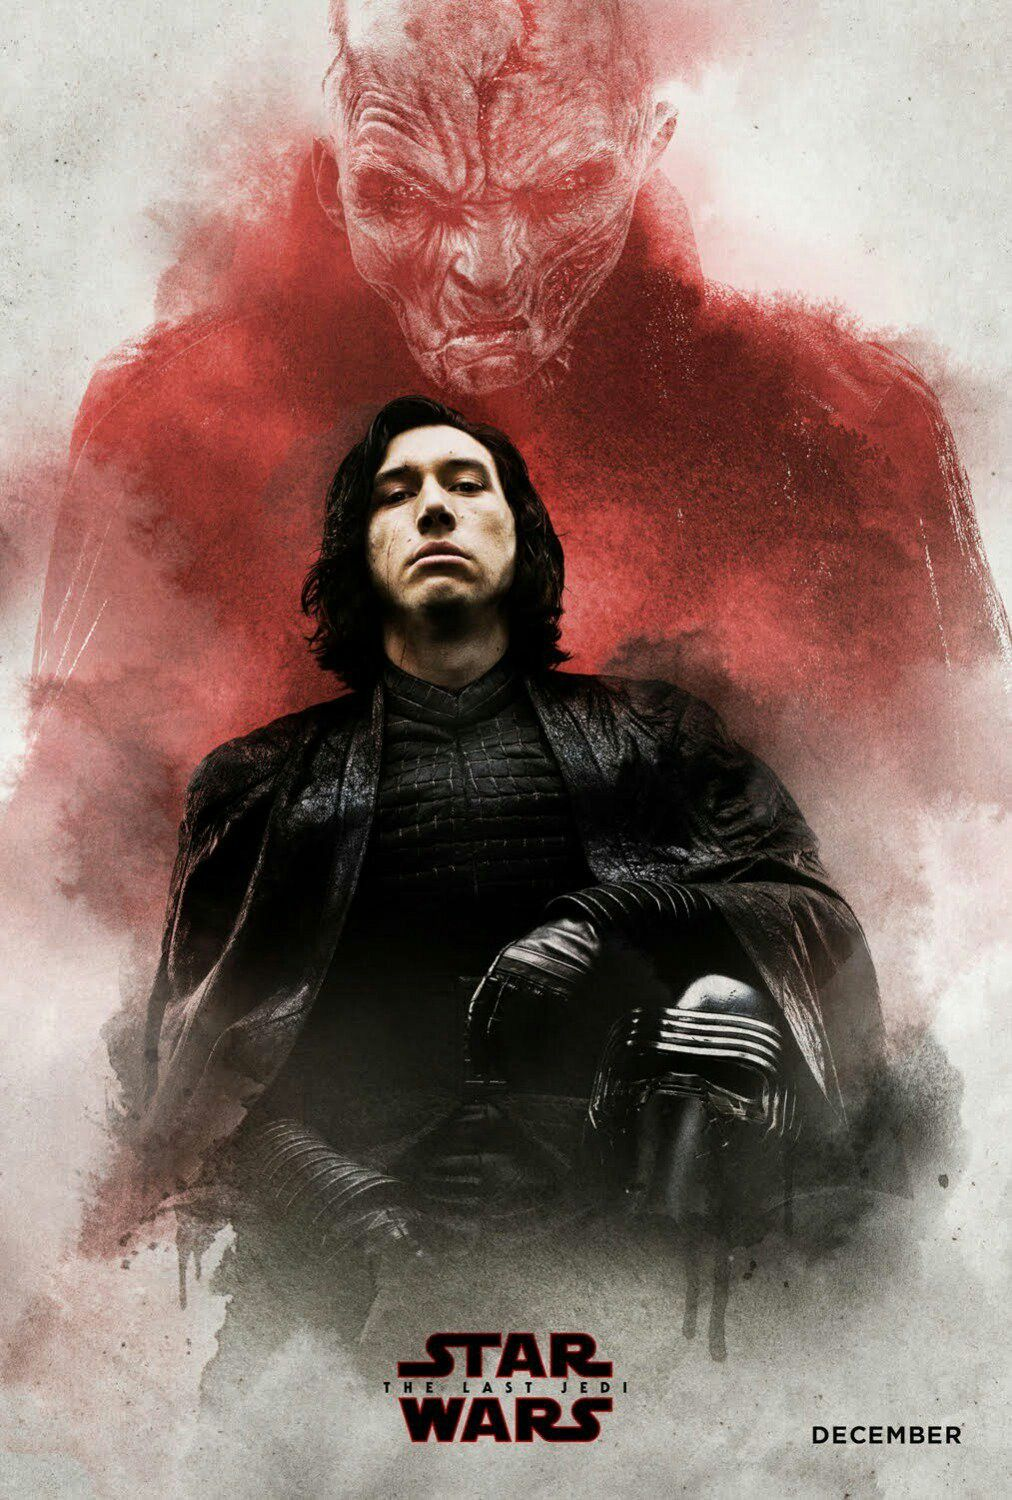 Kylo Ren Snoke Star Wars The Last Jedi Incredibly This Is Artwork For A Collectable Ticket For Regal C Ren Star Wars Star Wars Kylo Ren Star Wars Fan Art